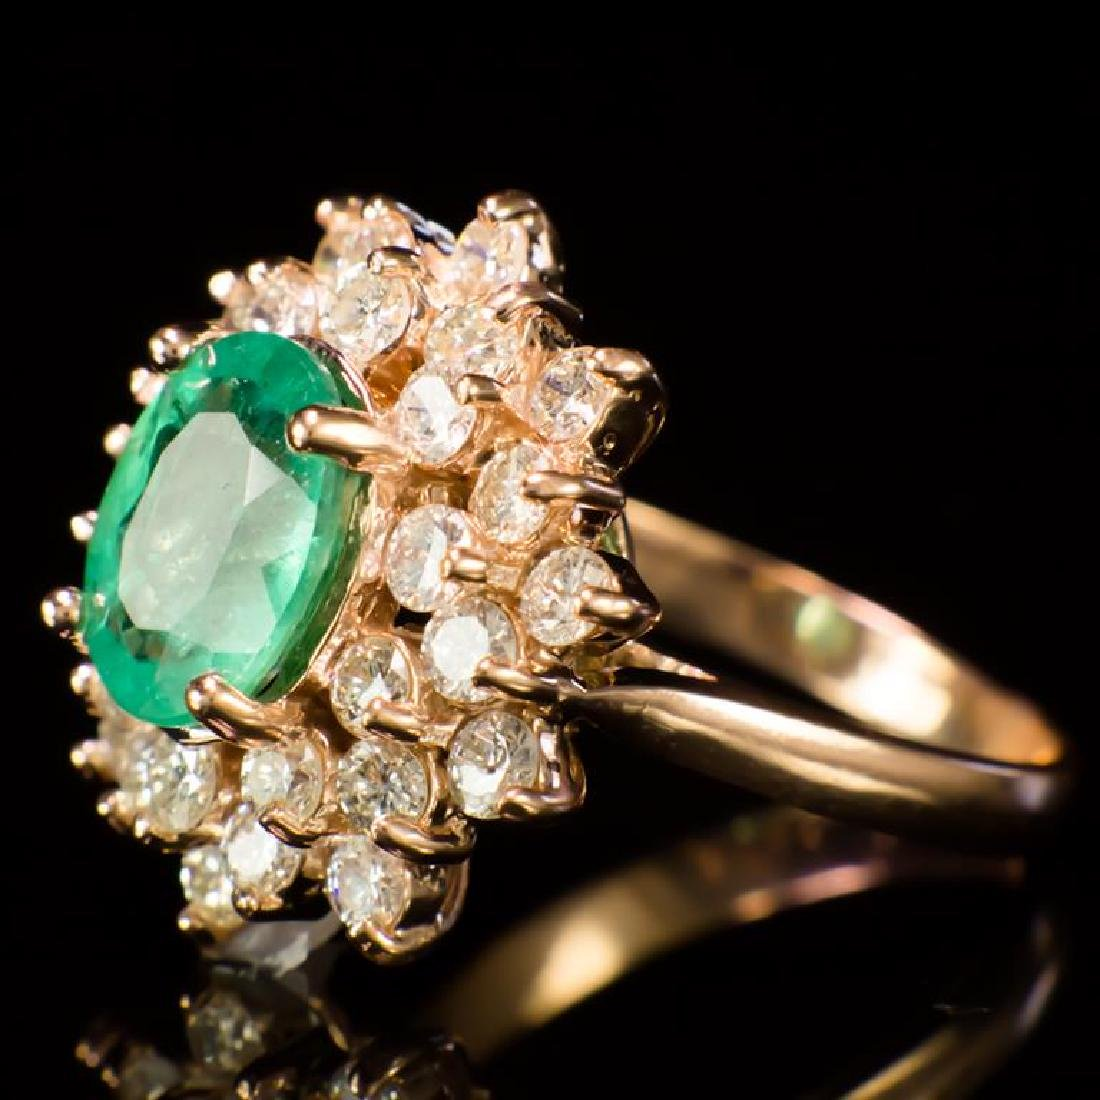 14K Gold 2.10ct Emerald 1.67ct Diamond Ring - 2